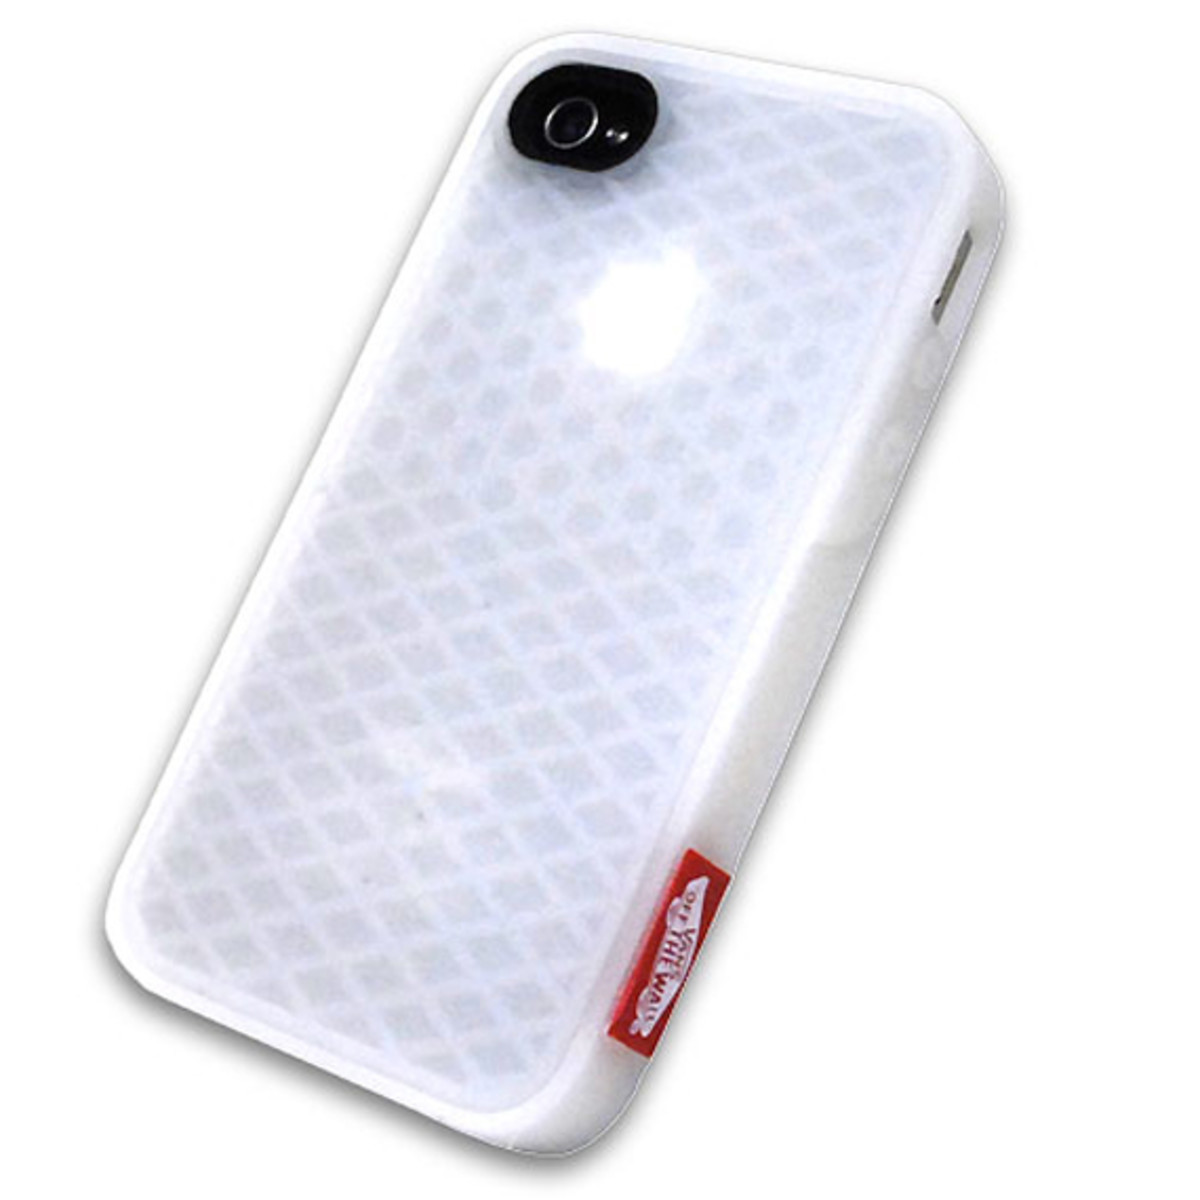 vans-rubber-waffle-sole-case-for-apple-iphone-4-glow-in-the-dark-edition-02